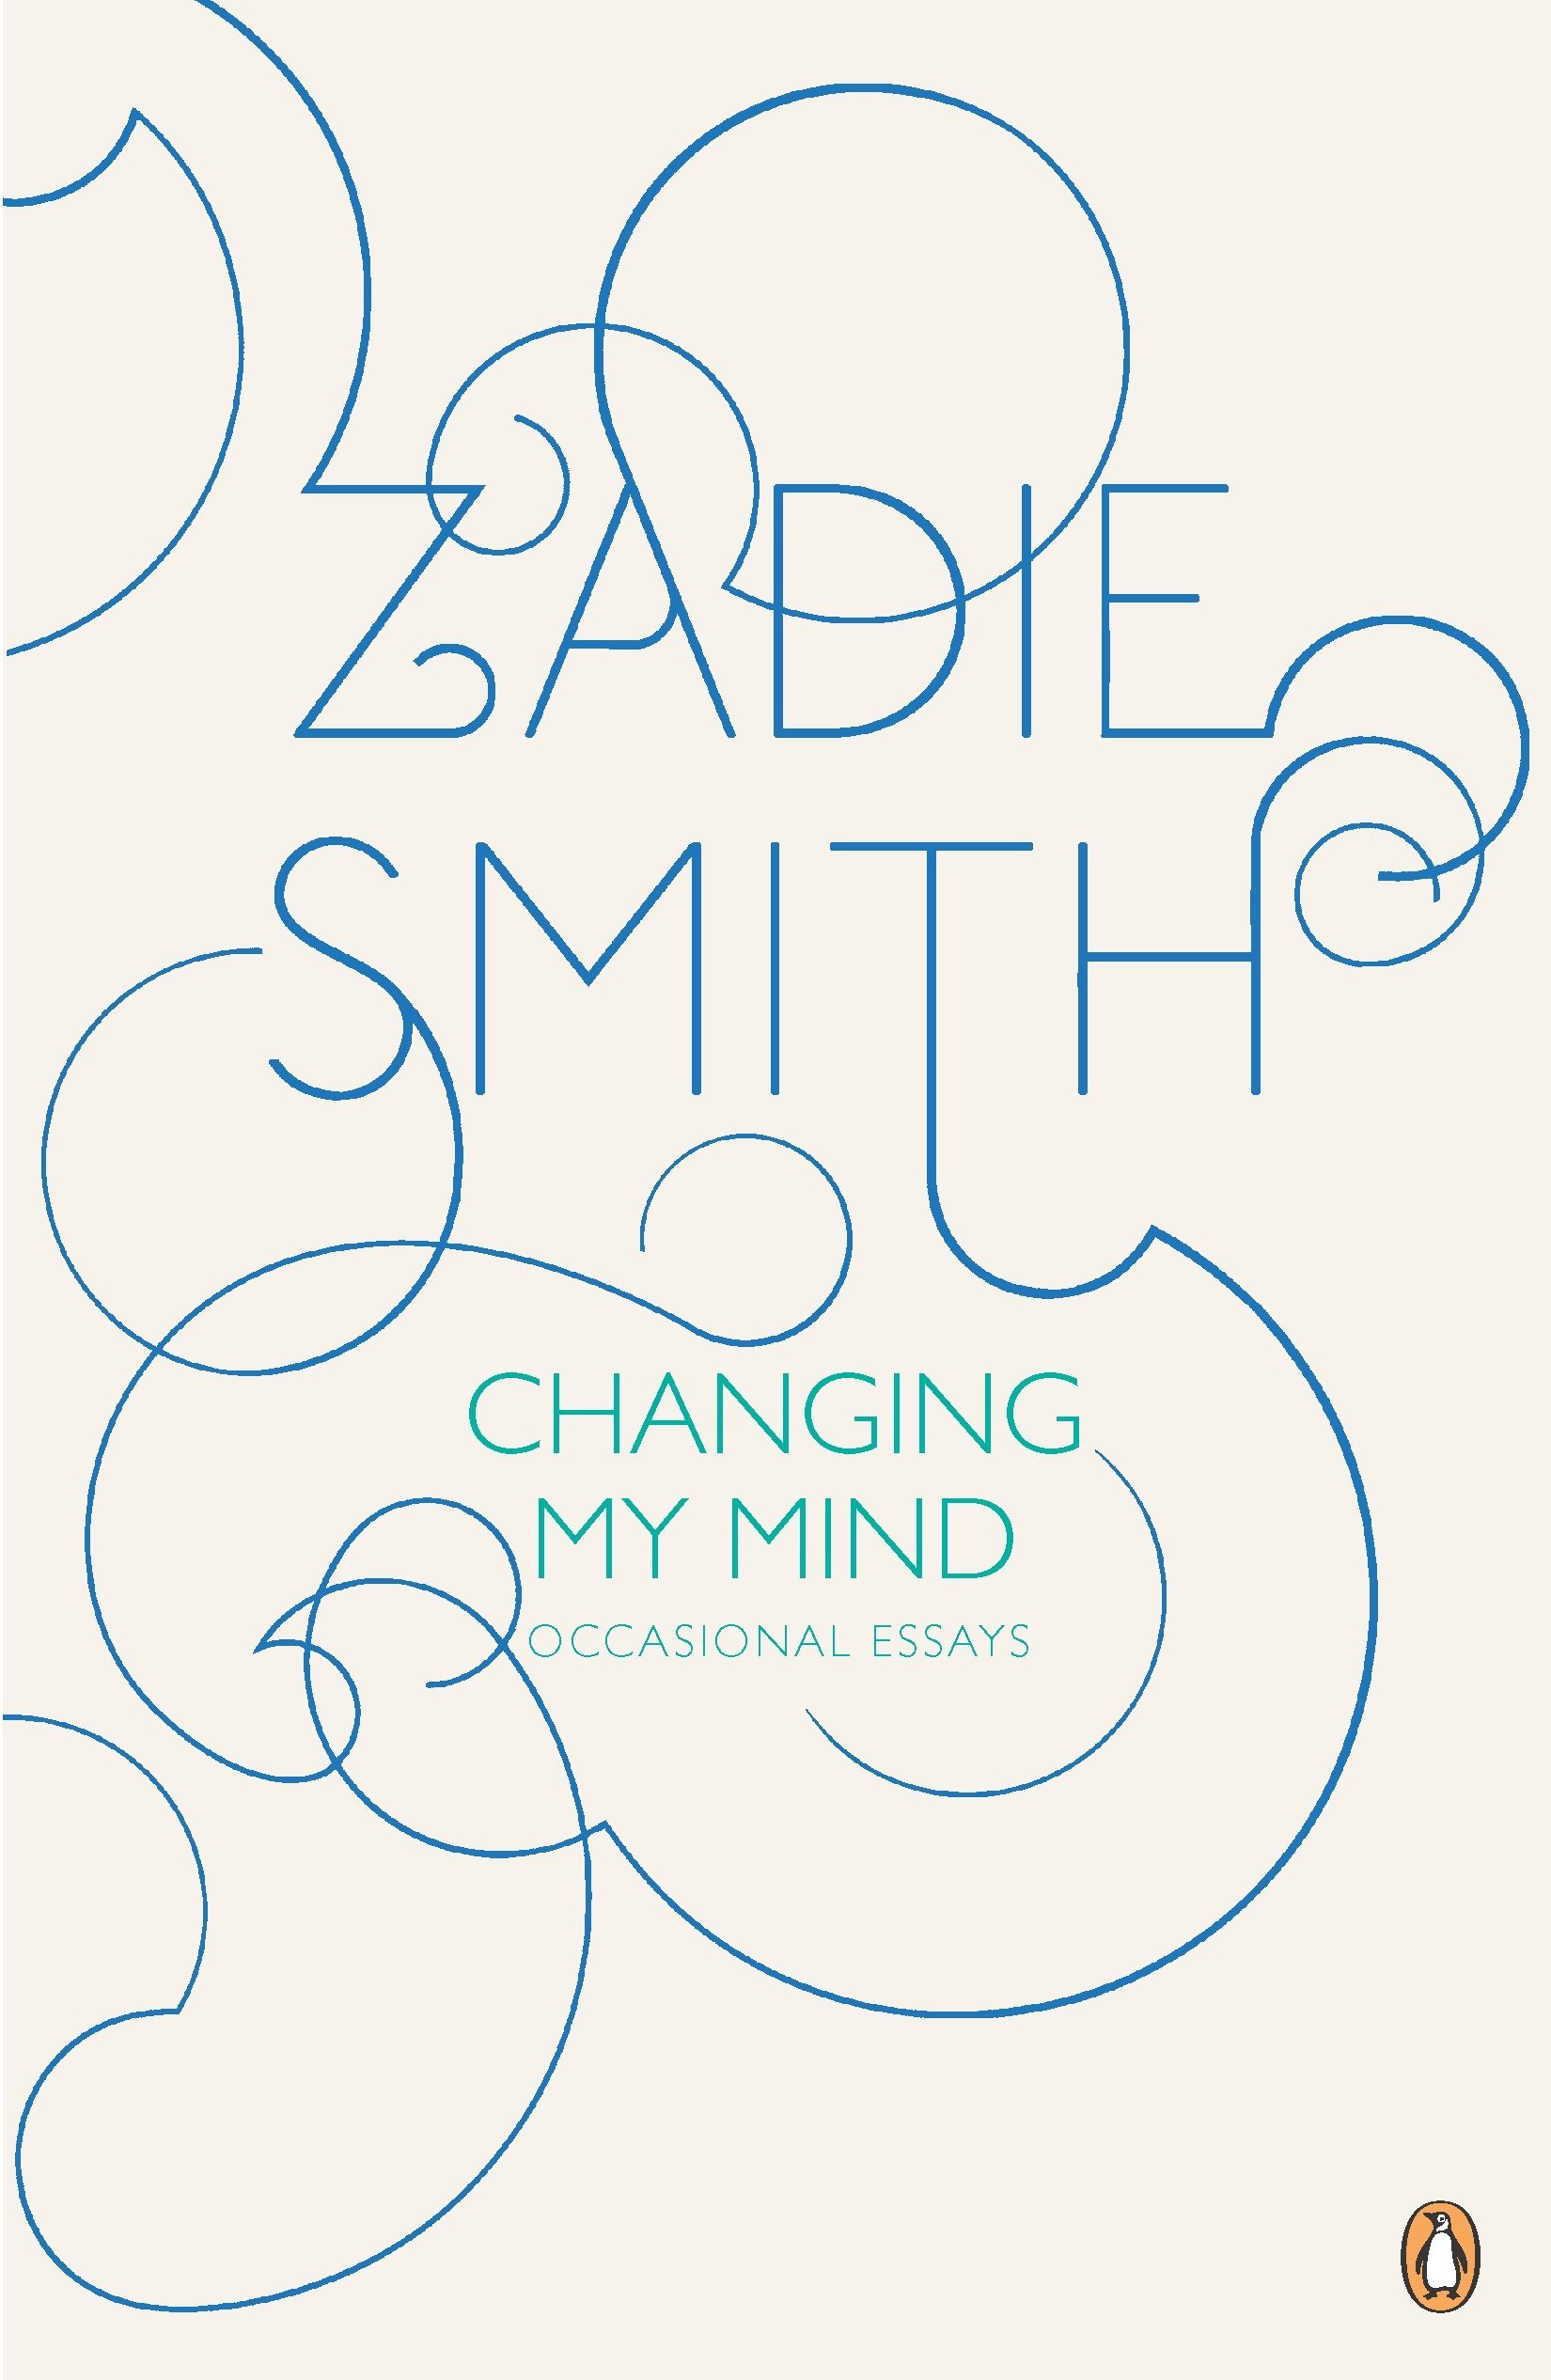 001 Essay Example Changing My Mind Occasional Essays Striking Pdf By Zadie Smith Full